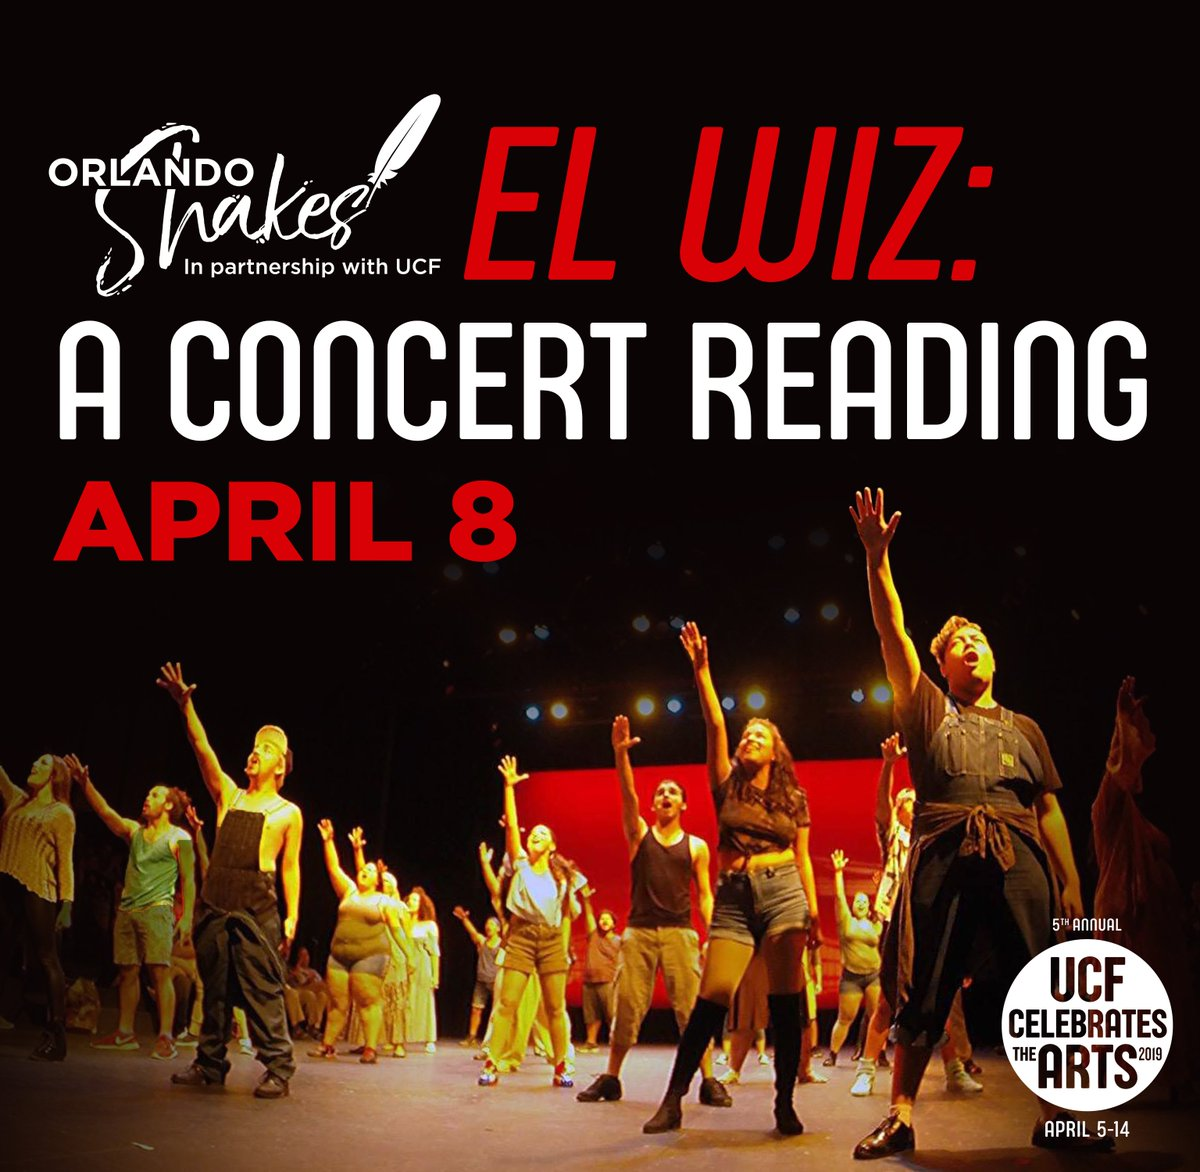 El Wiz - Josh is acting as Music Director for EL WIZ, a new Latinx musical based on the Wizard of Oz. The show was conceived by Juan Cantú and Paul Castañeda and is currently in development. Recently, the show was performed at the Dr. Phillips Center in the Alexis and Jim Pugh Theatre.